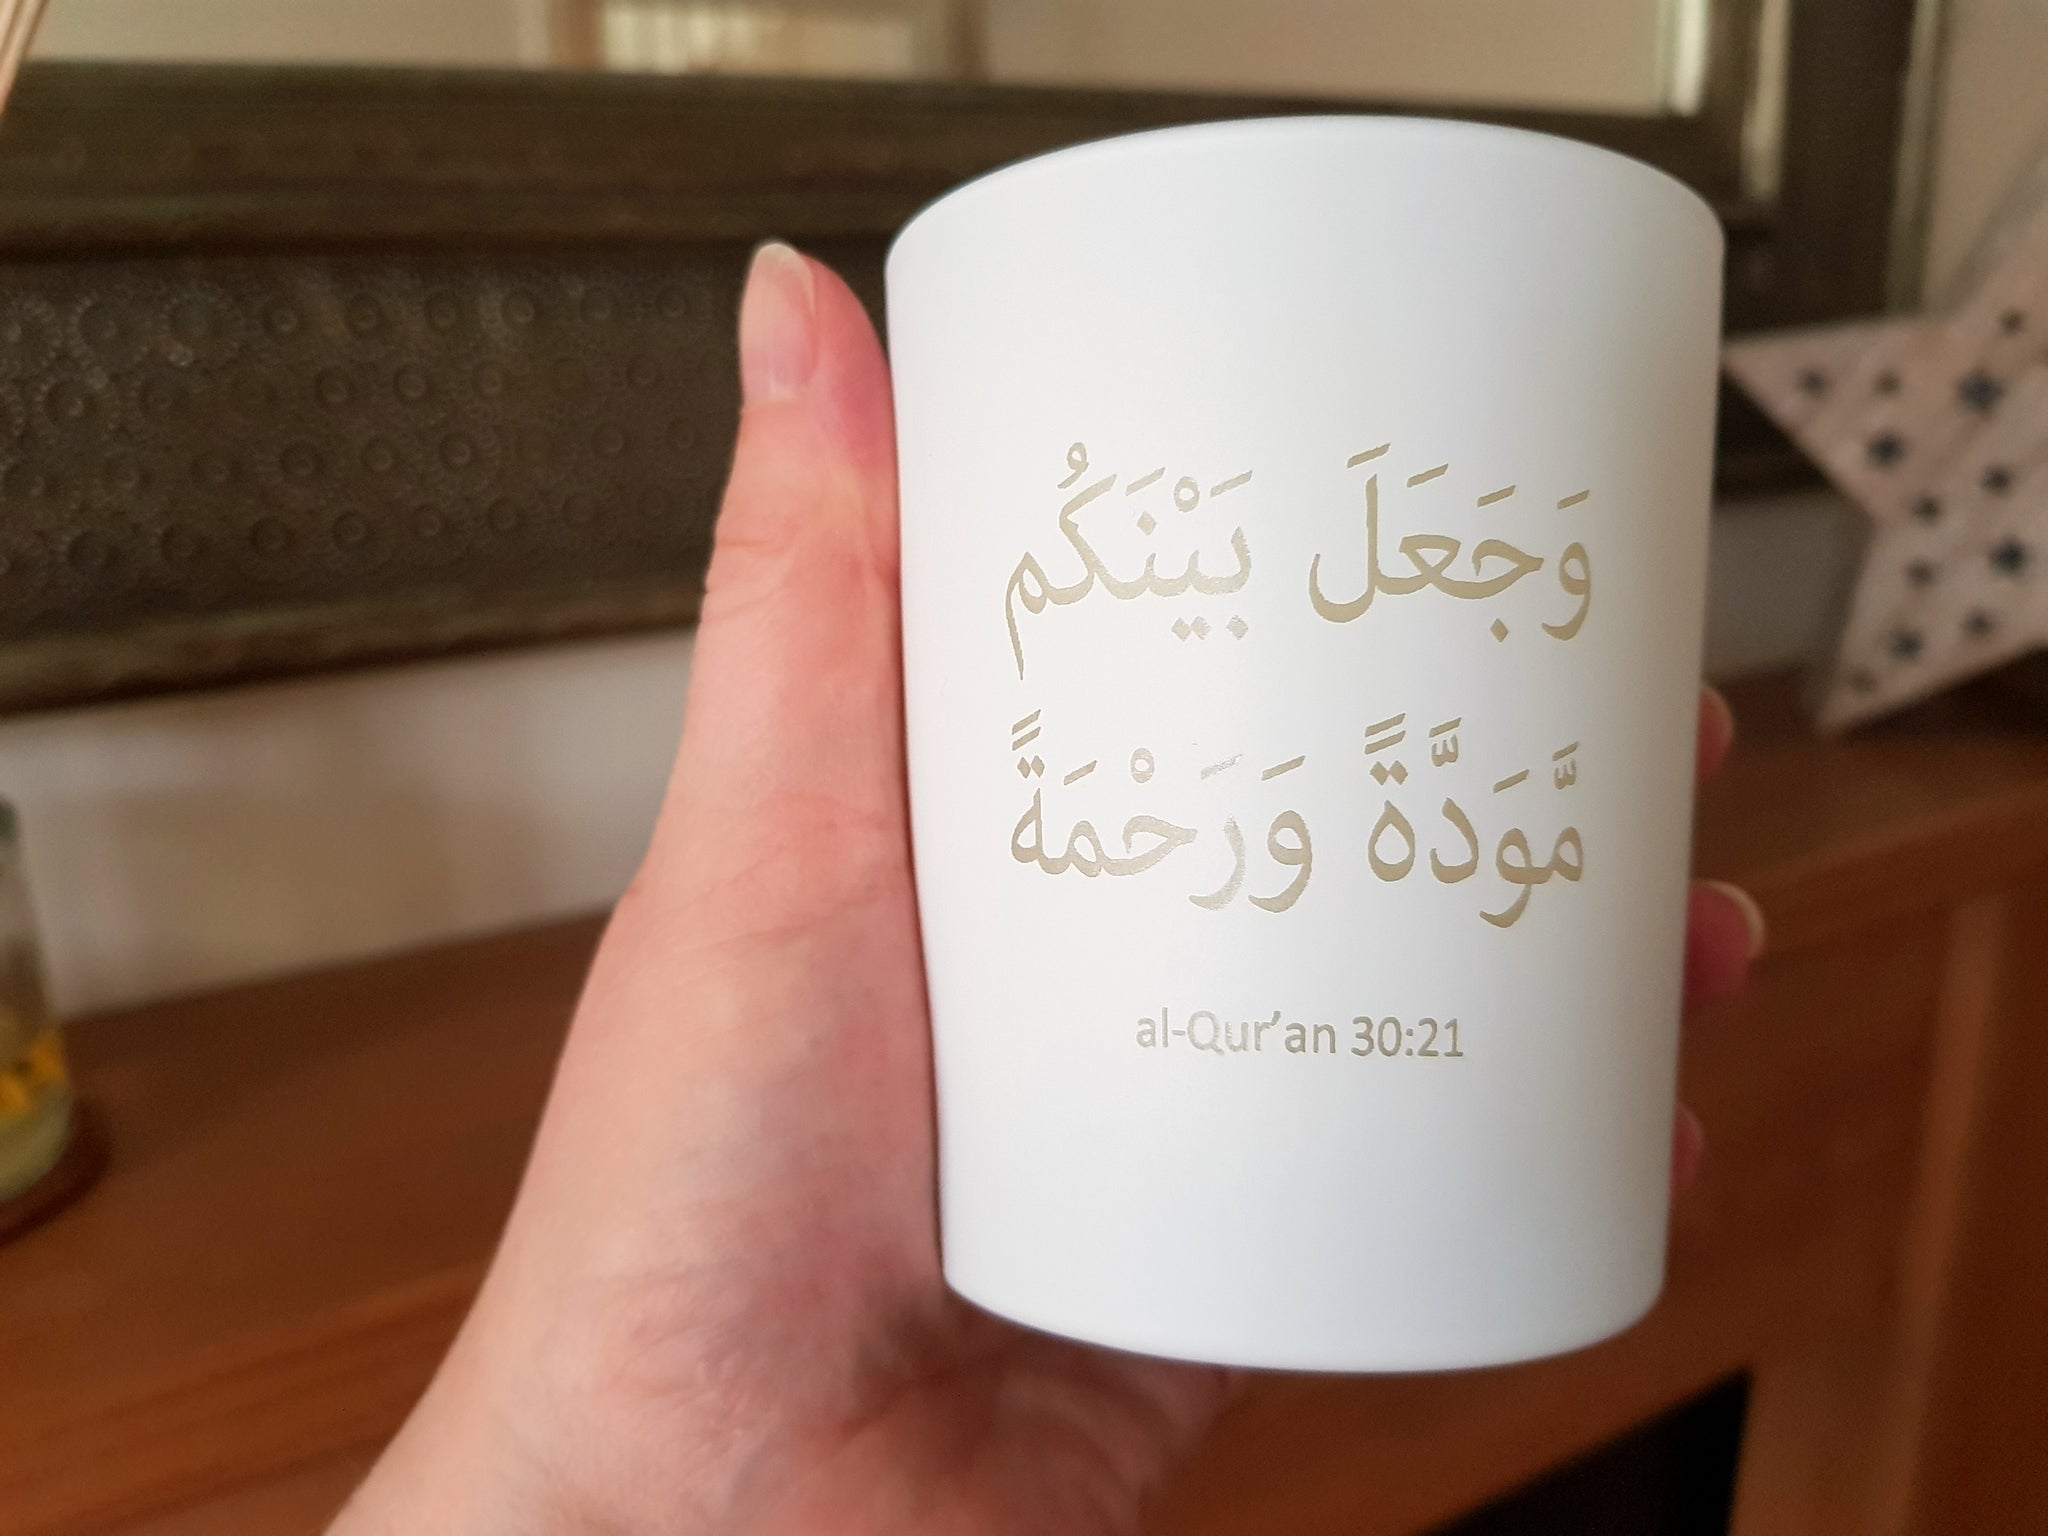 Arabic scented candle in white glass etched pot with 30:21 of the Qur'an in Arabic writing